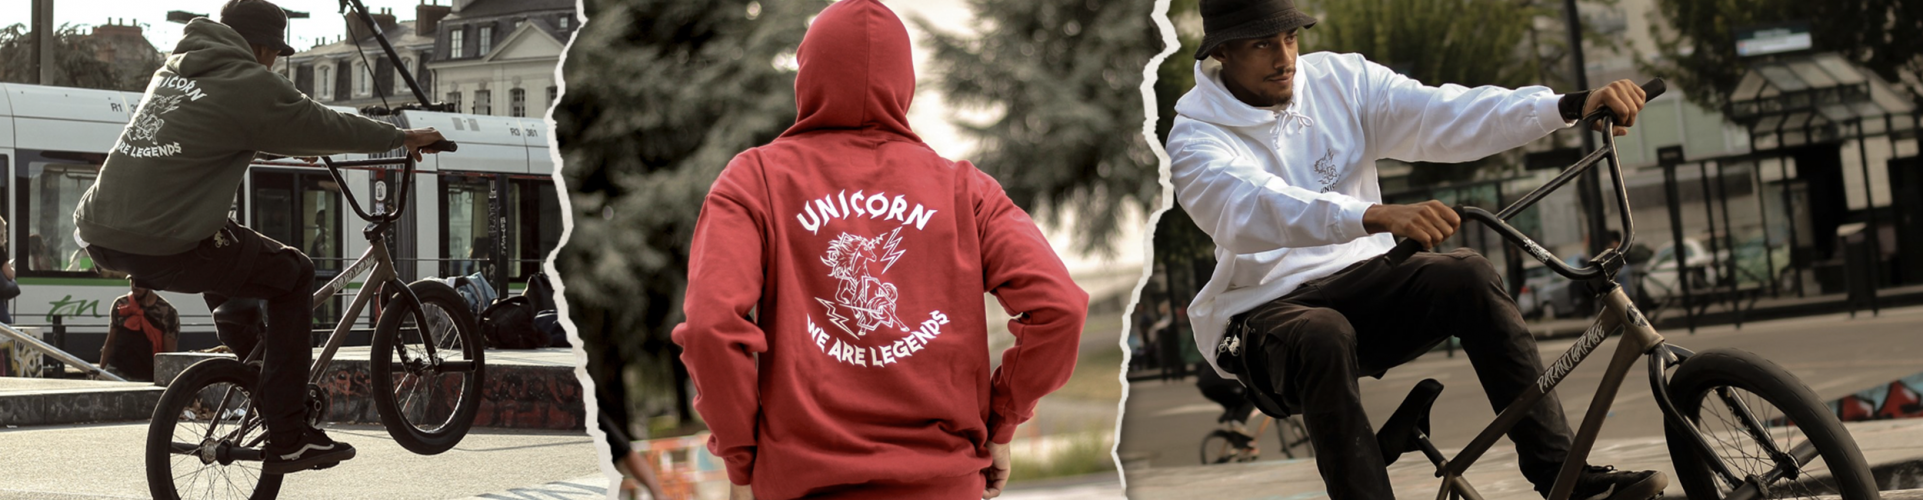 T-shirts Unicorn classic one - S à XXL - Unicorn We are Legends